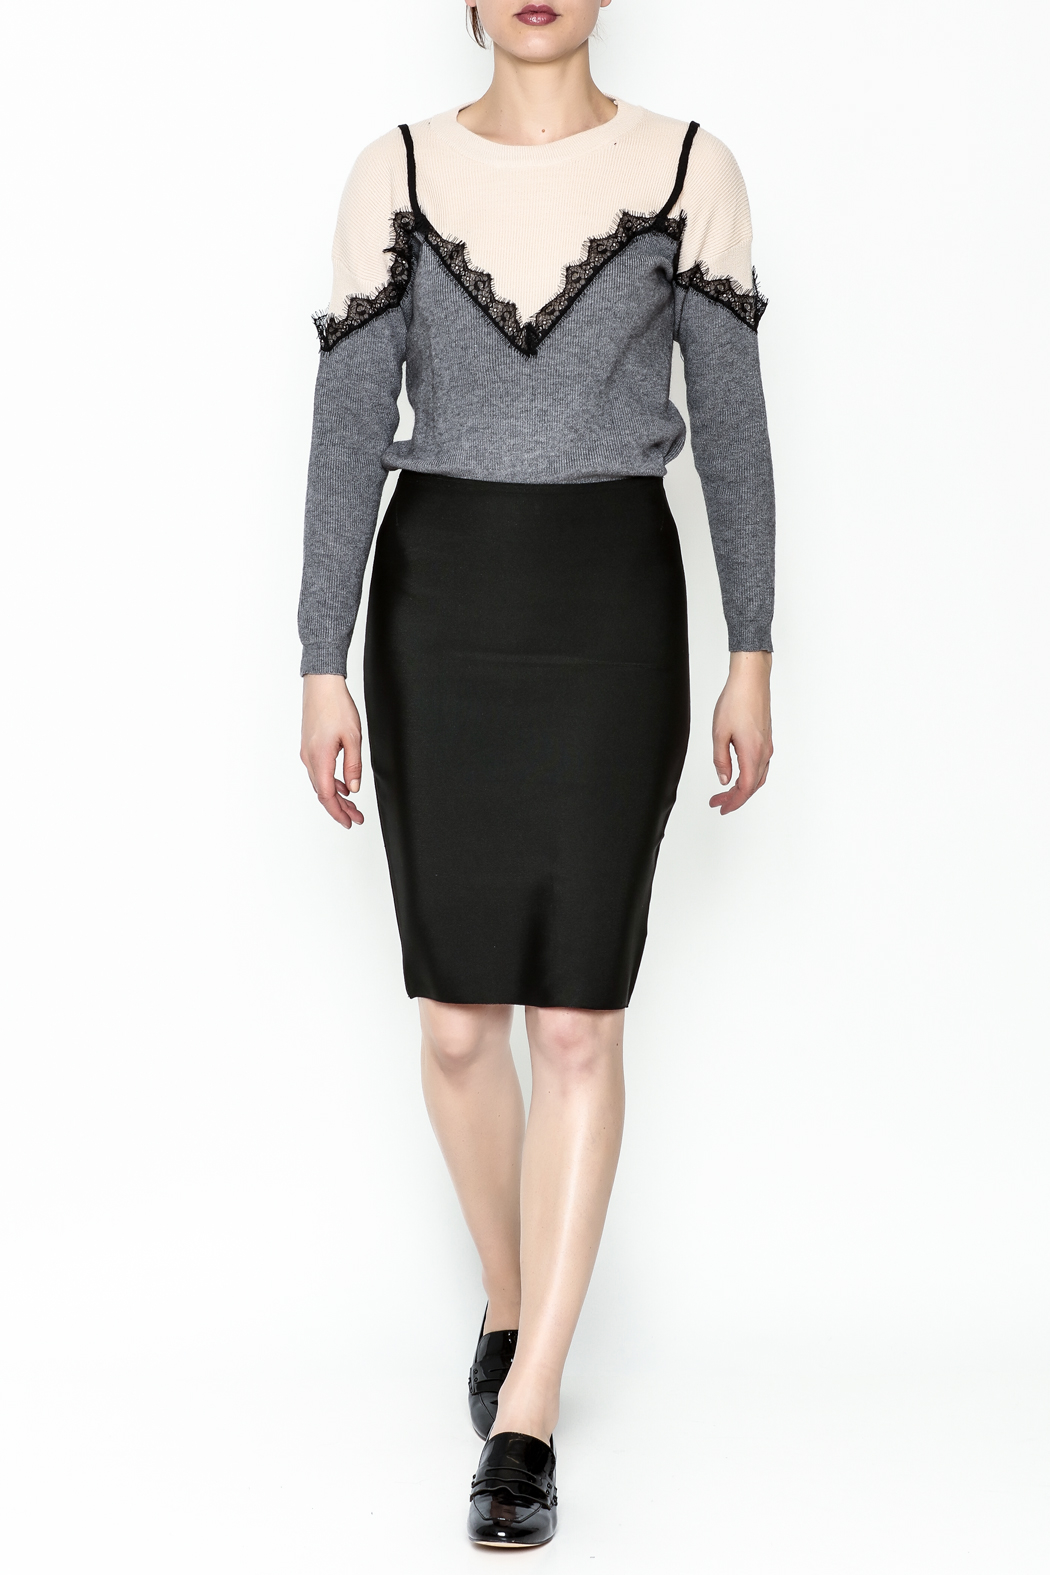 Wow Couture Bandage Skirt - Side Cropped Image